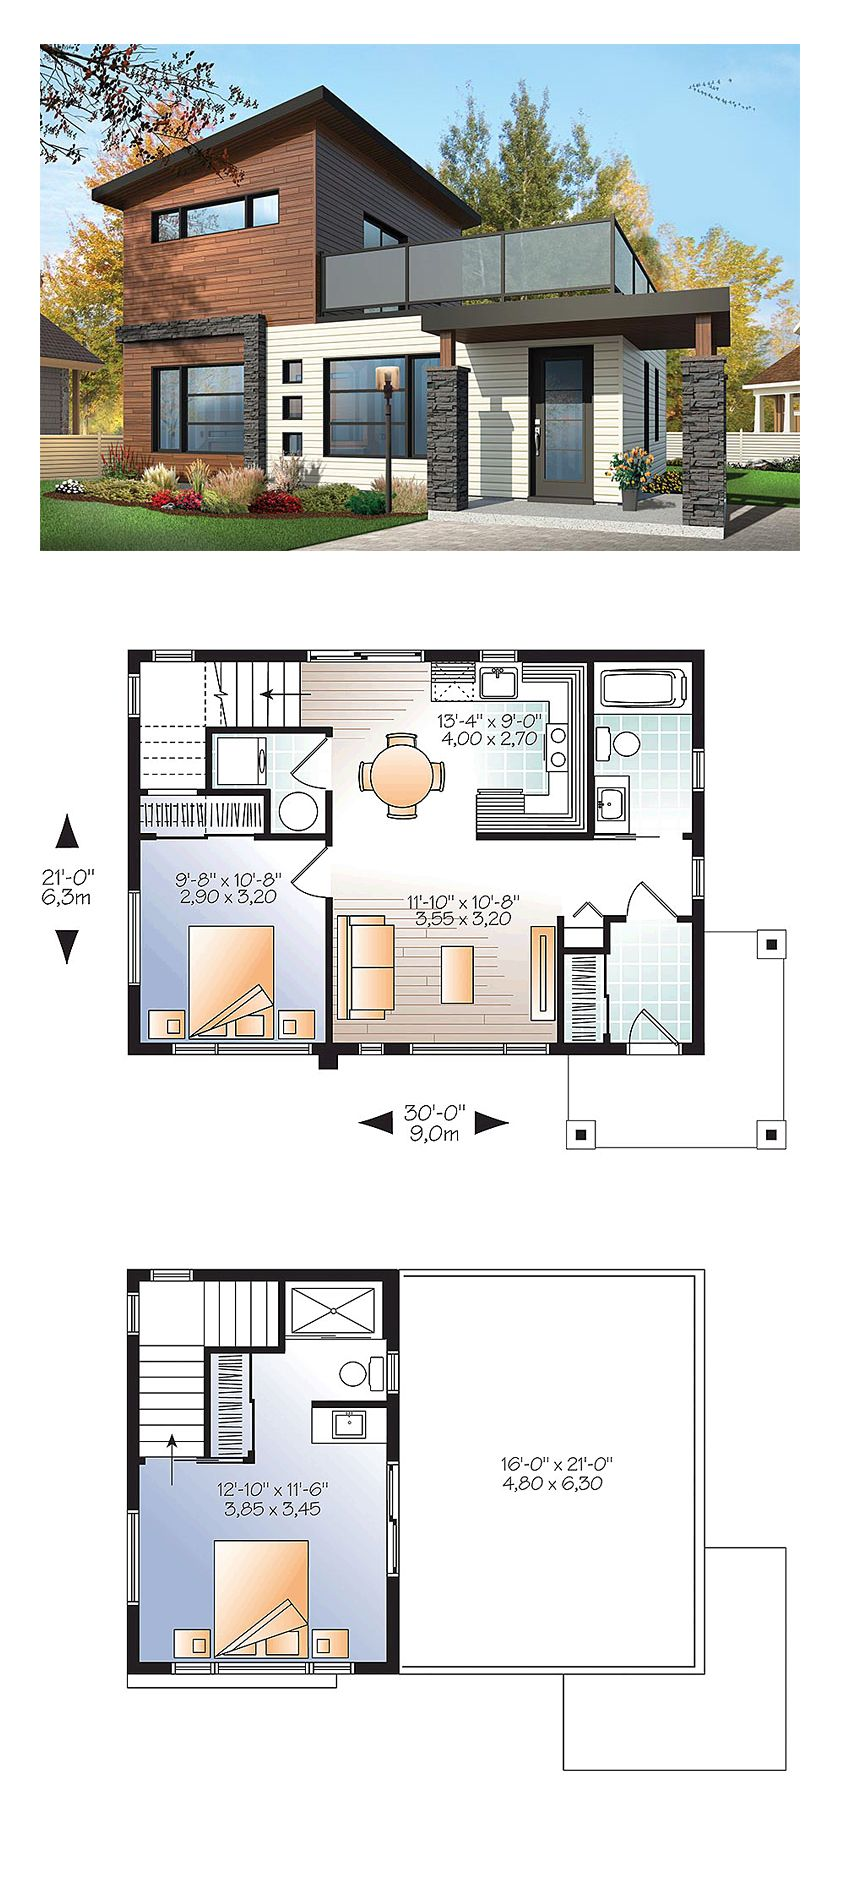 Modern house plan 76461 total living area 924 sq ft for Tiny home blueprints free